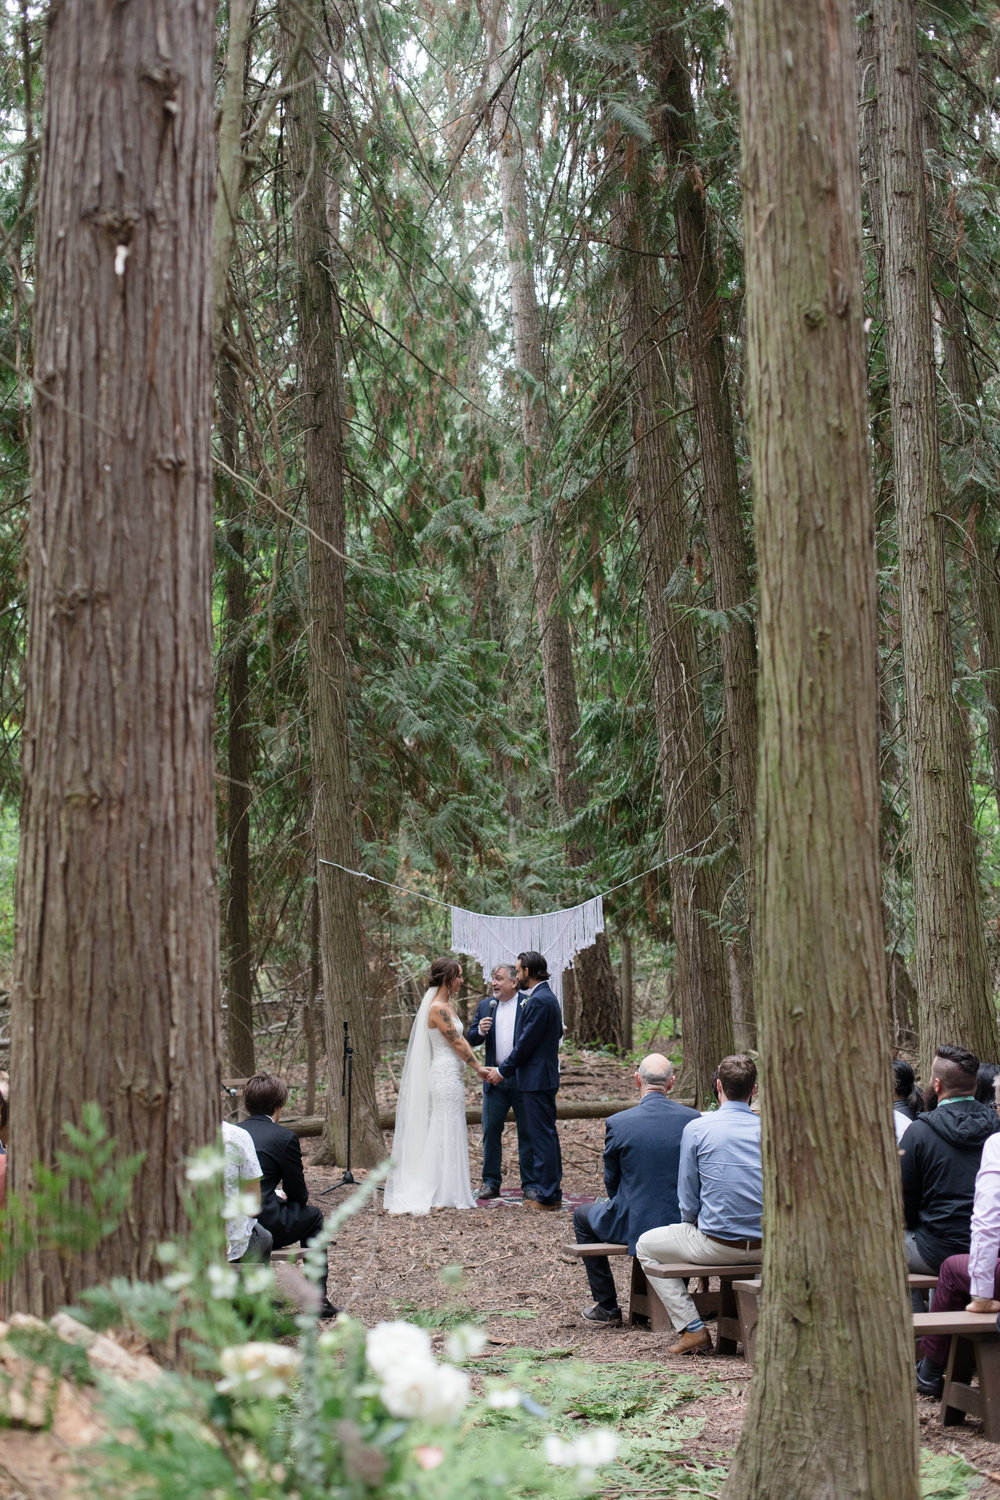 Ceremony in the woods.jpg